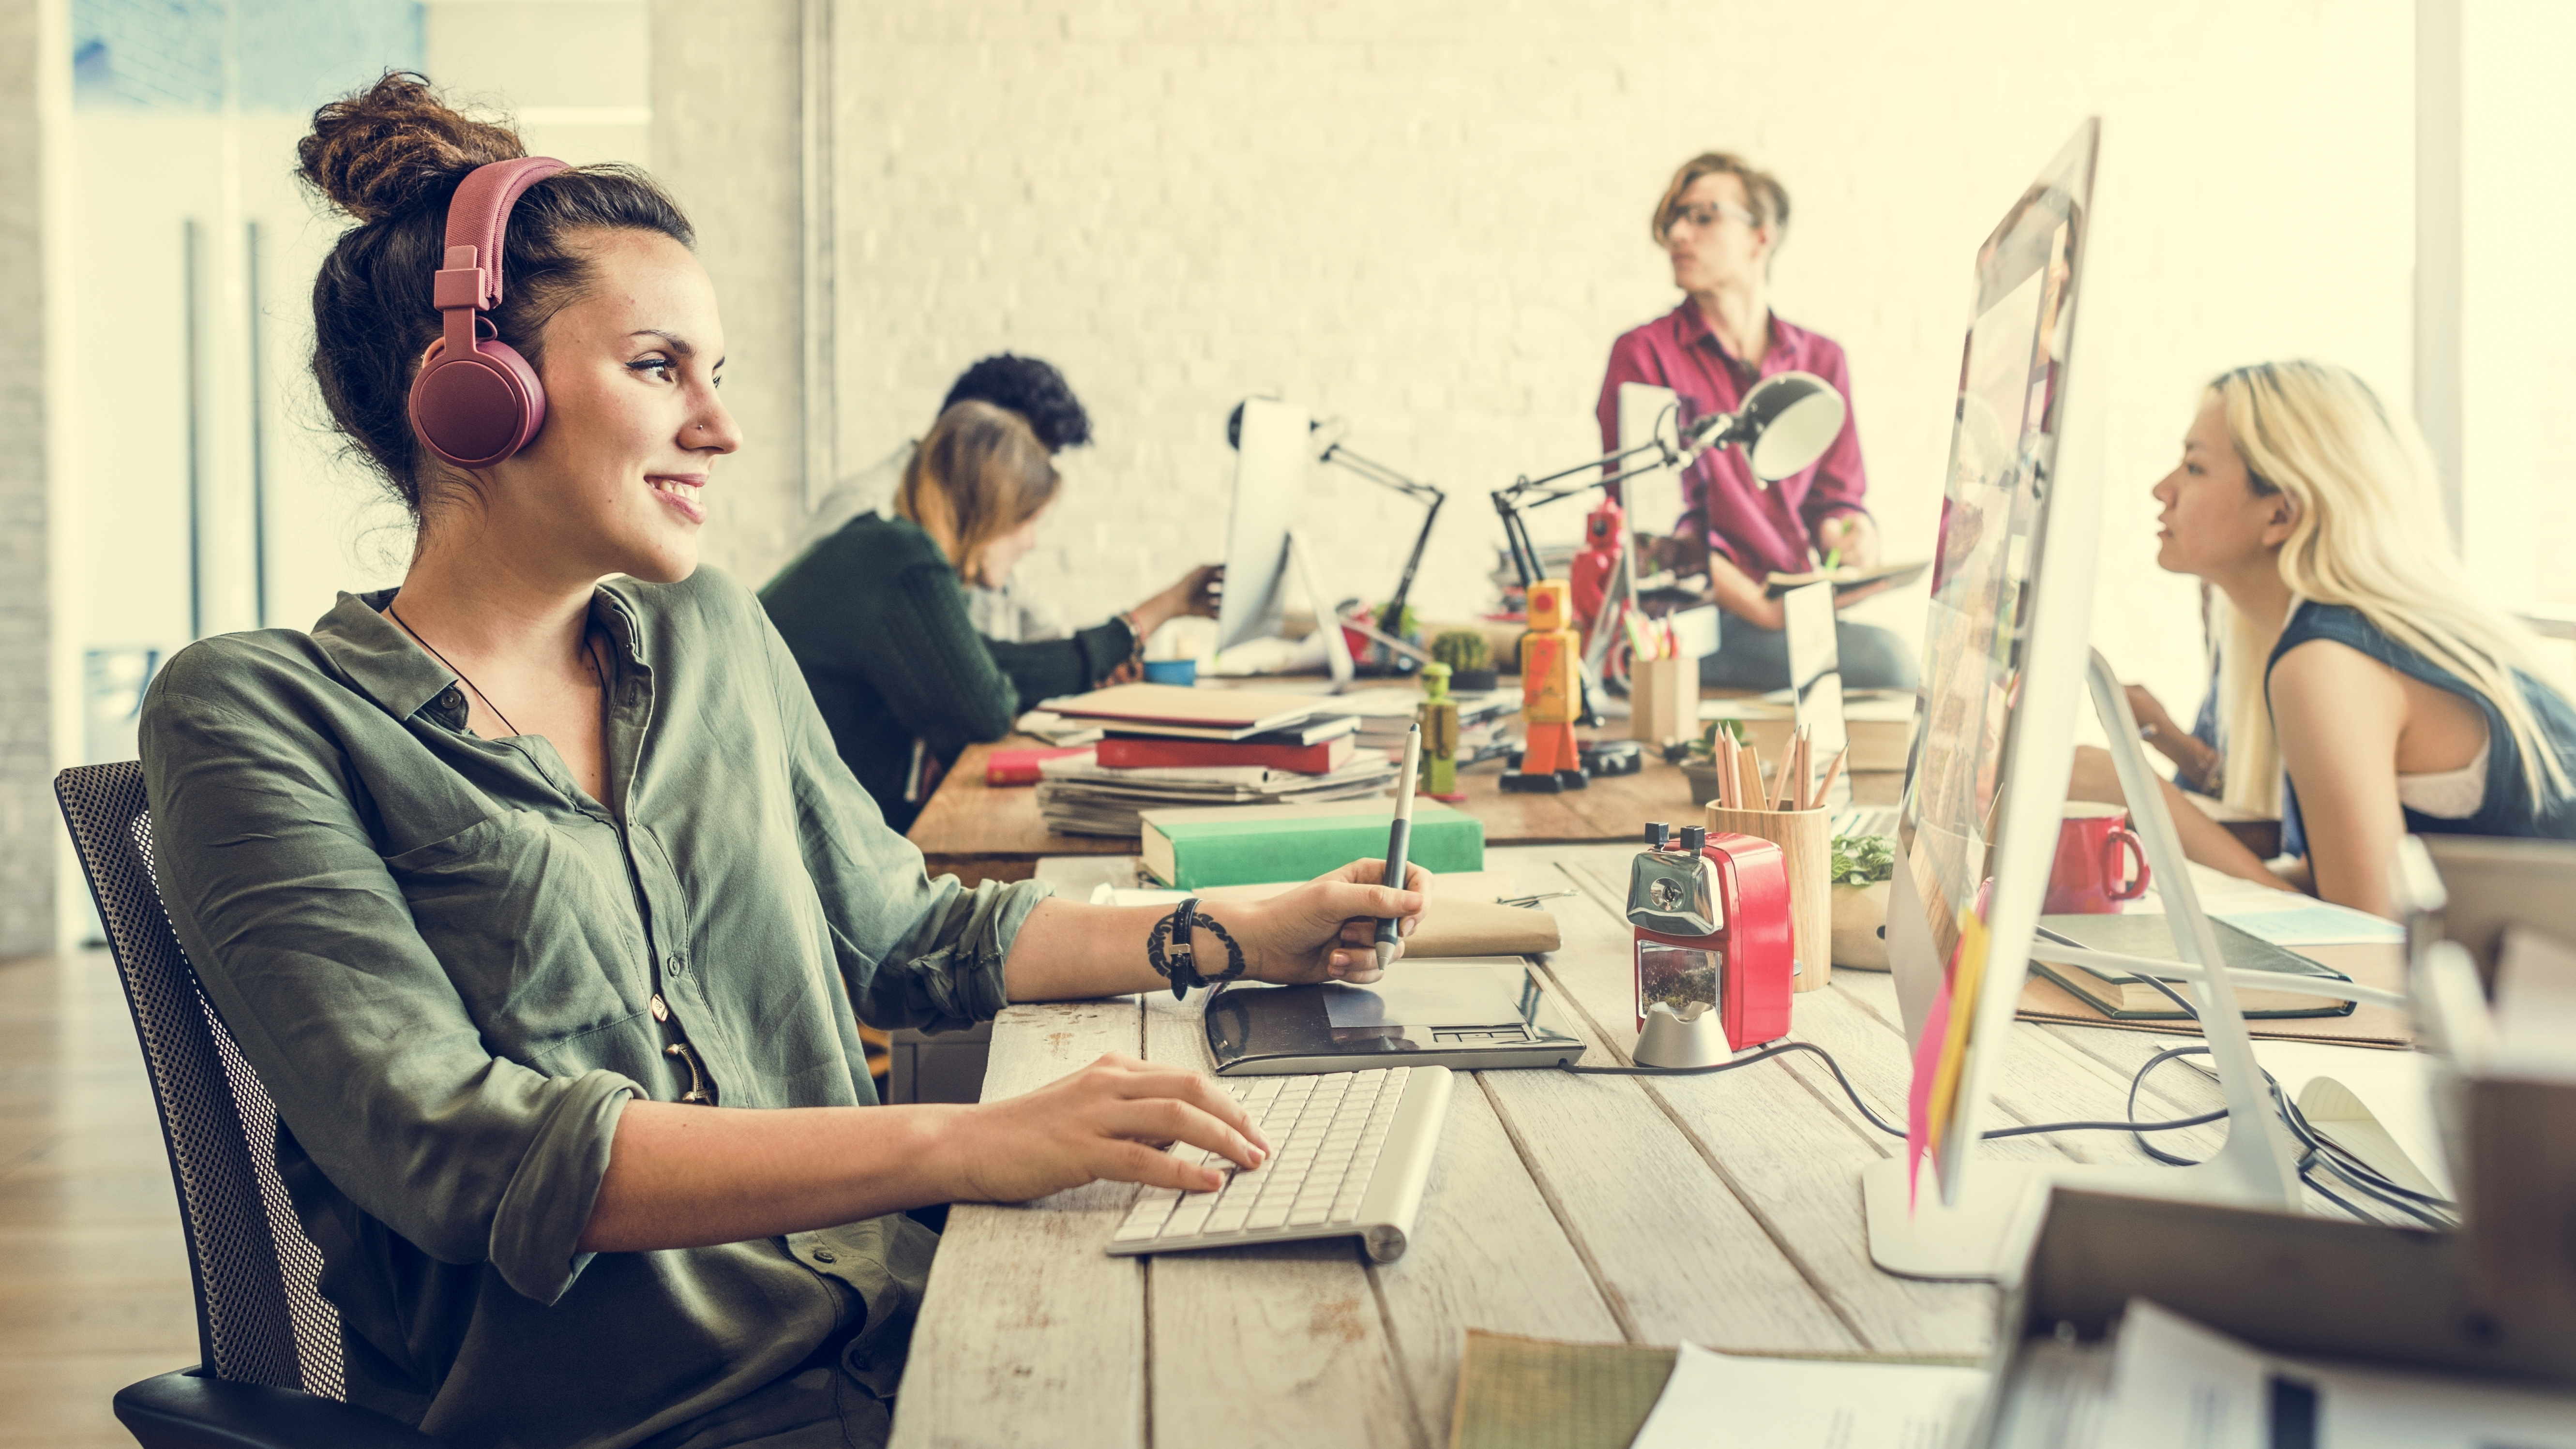 Working in Shared Workspace - Image of a Girl with Headphone and Three Other Coworkers